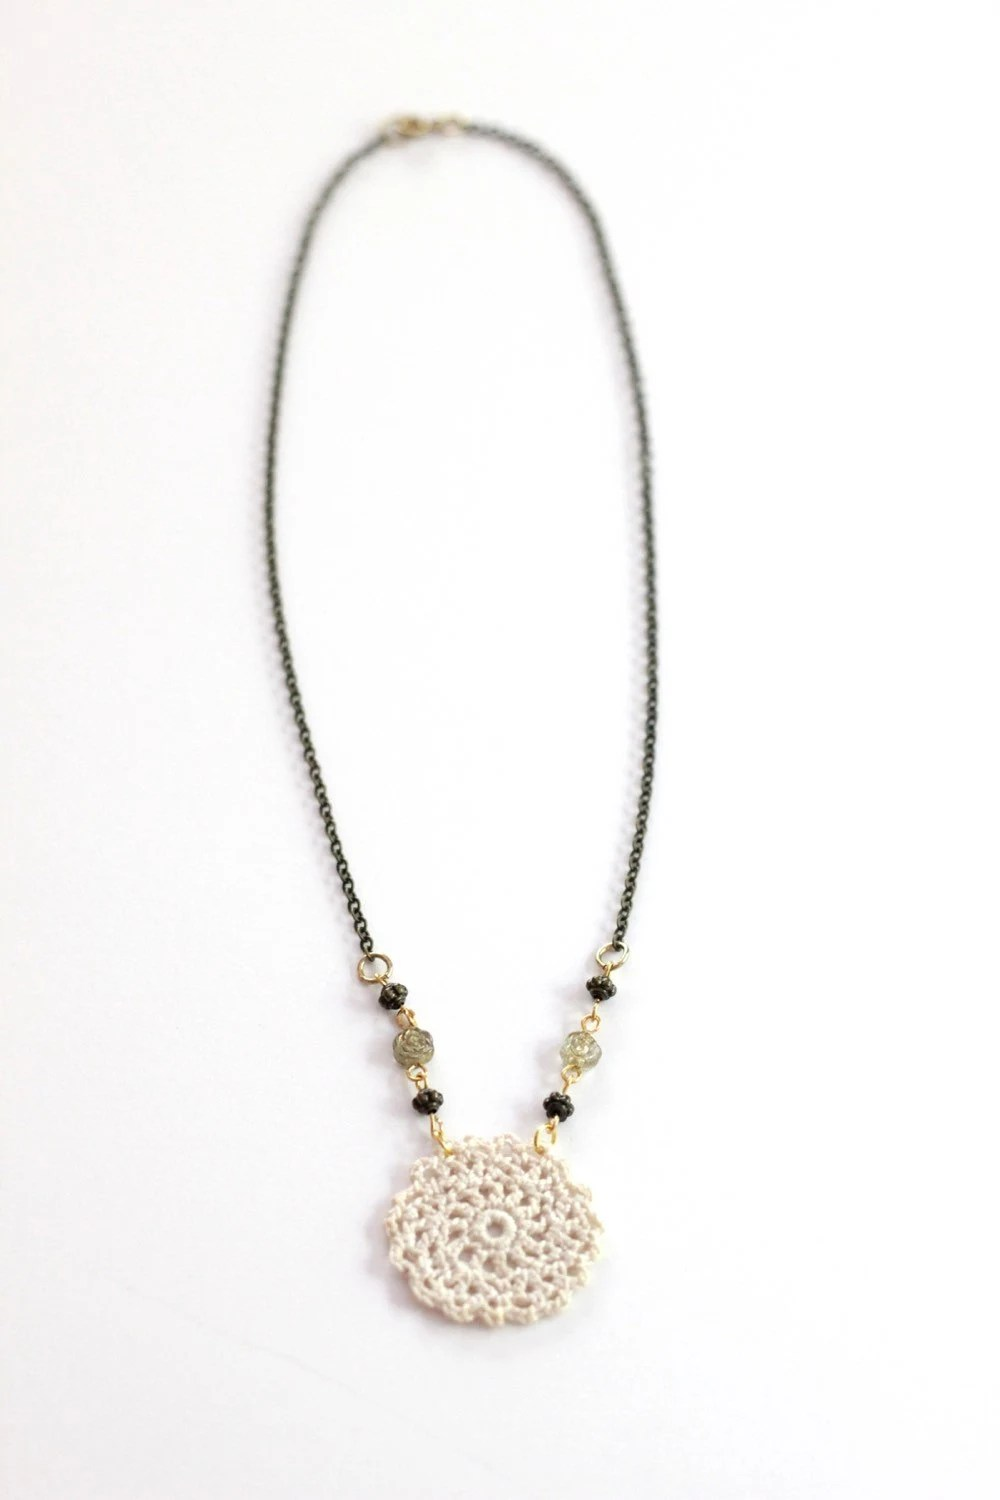 Lace Pendant Necklace Hand Crocheted Jewelry by